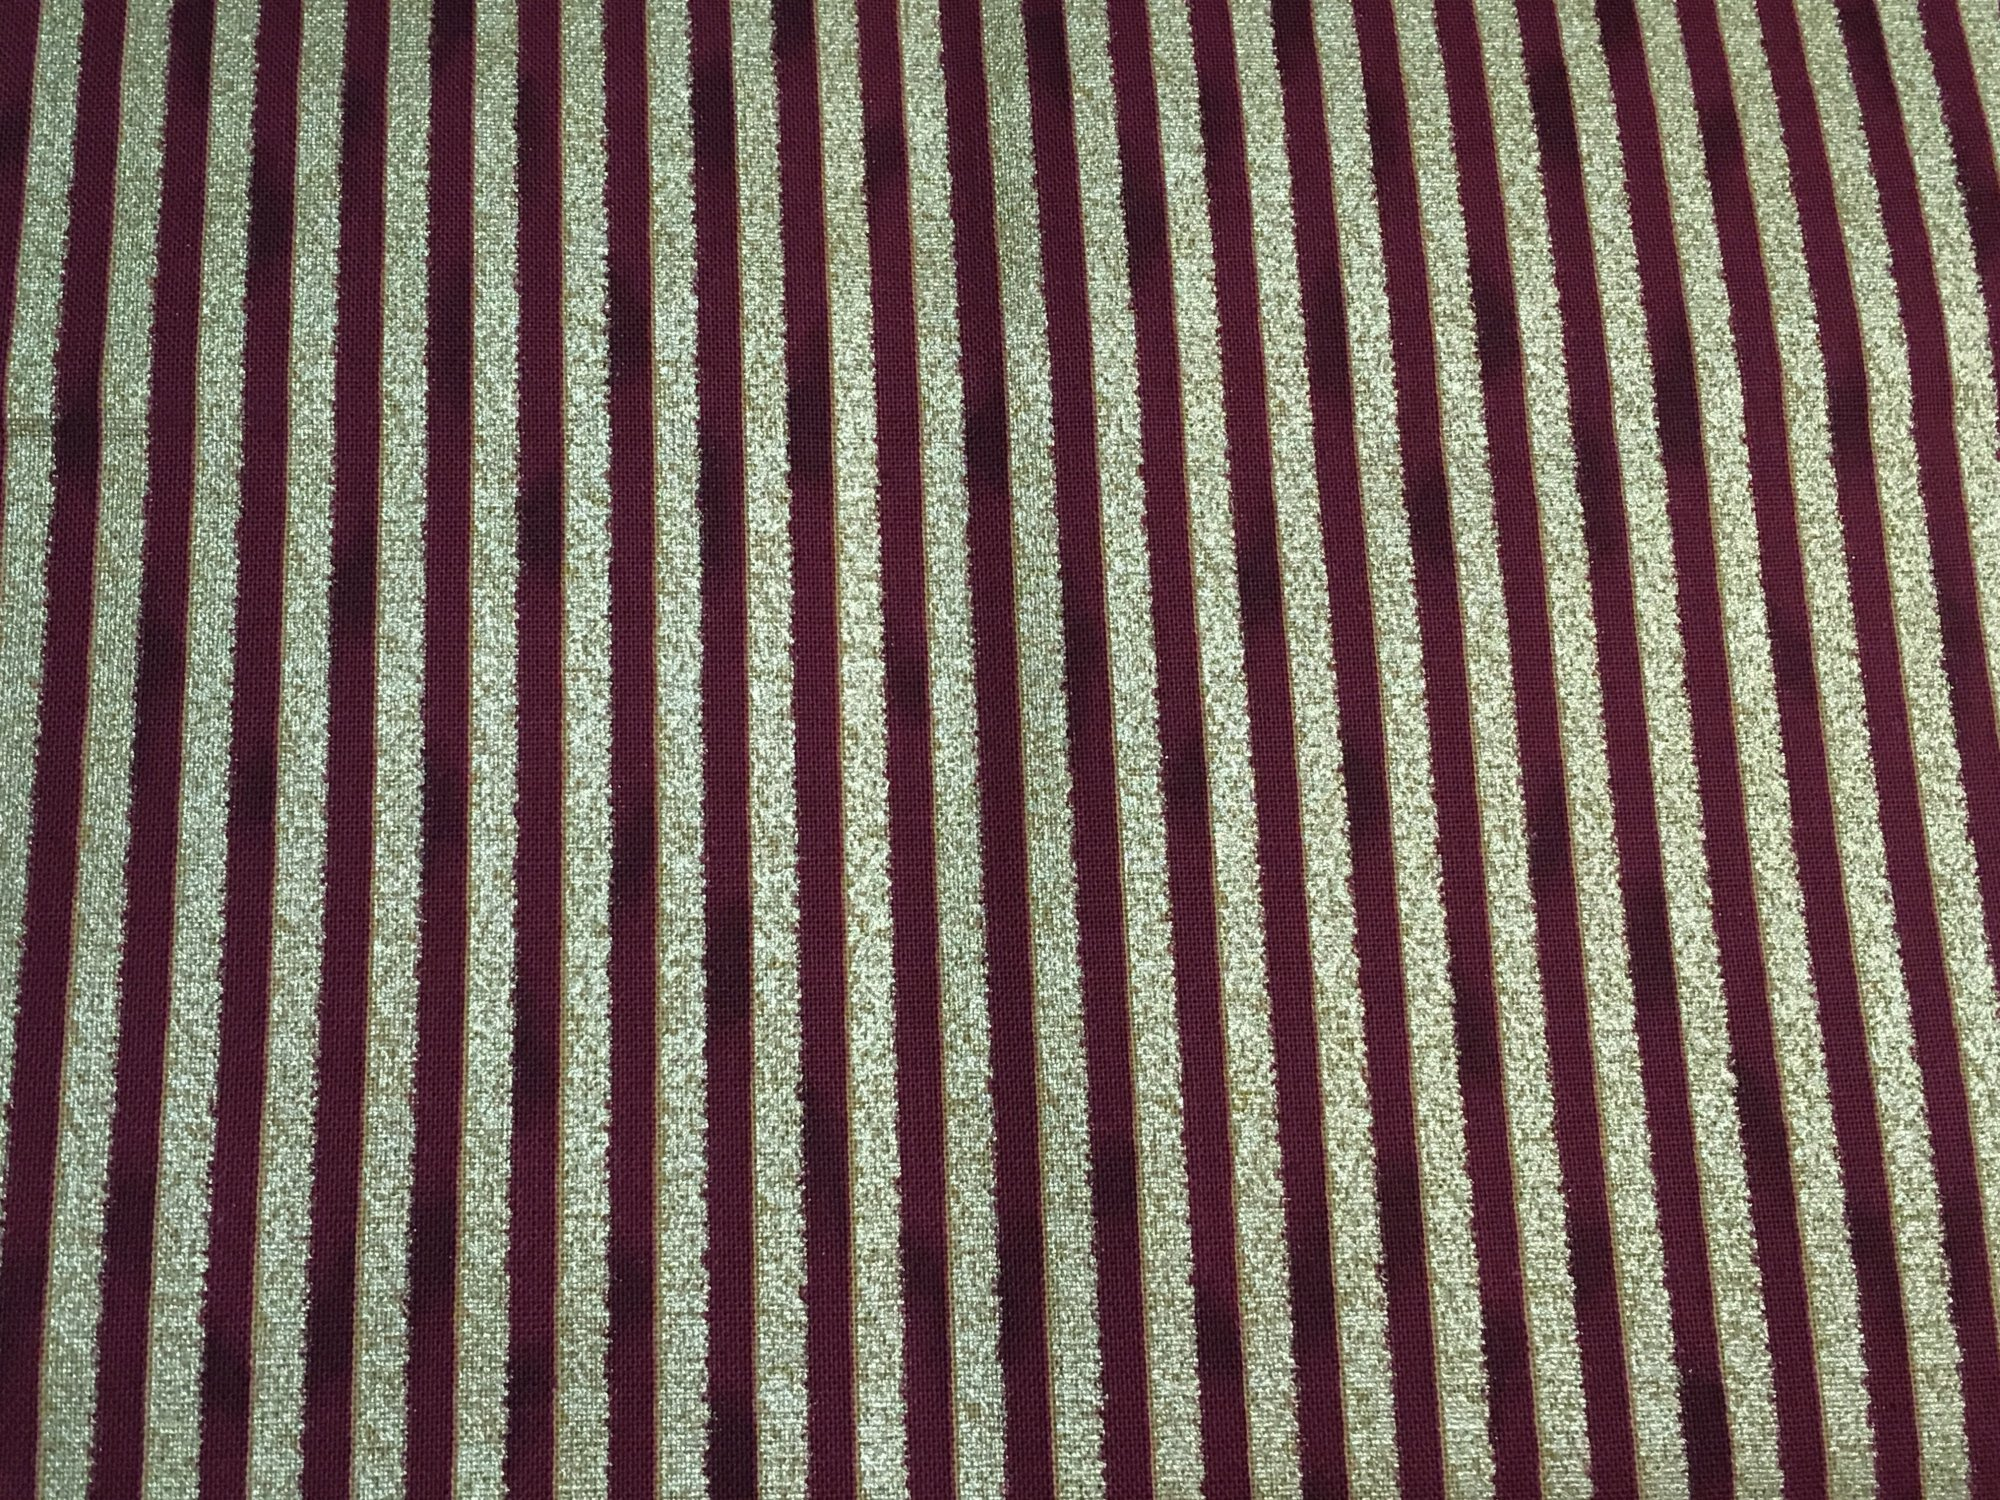 Glimmering red with gold stripes